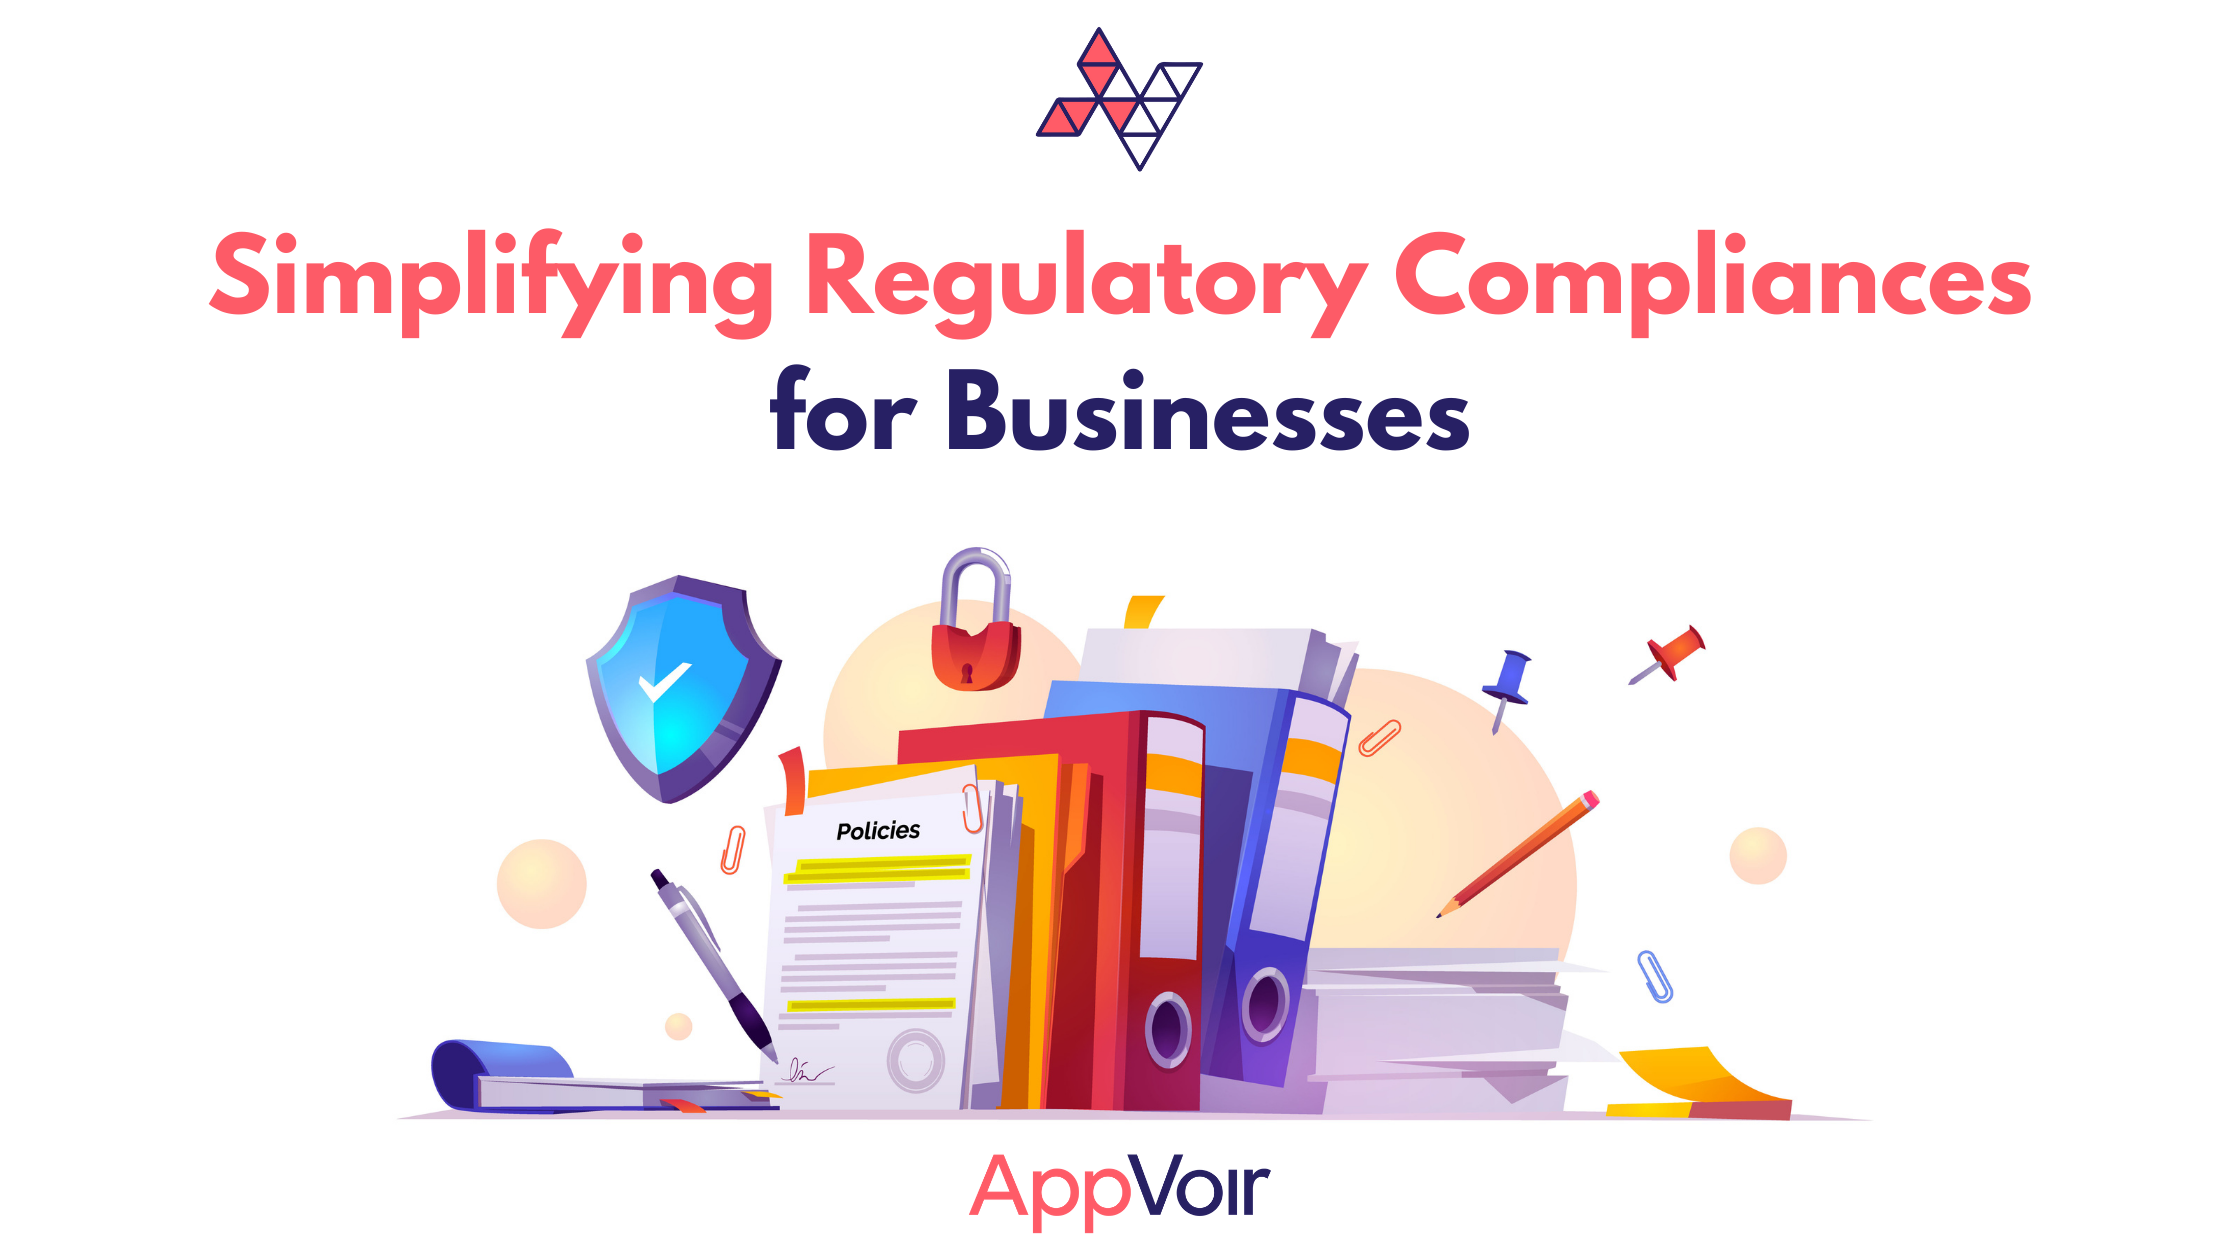 Regulatory Compliance for Businesses simplified